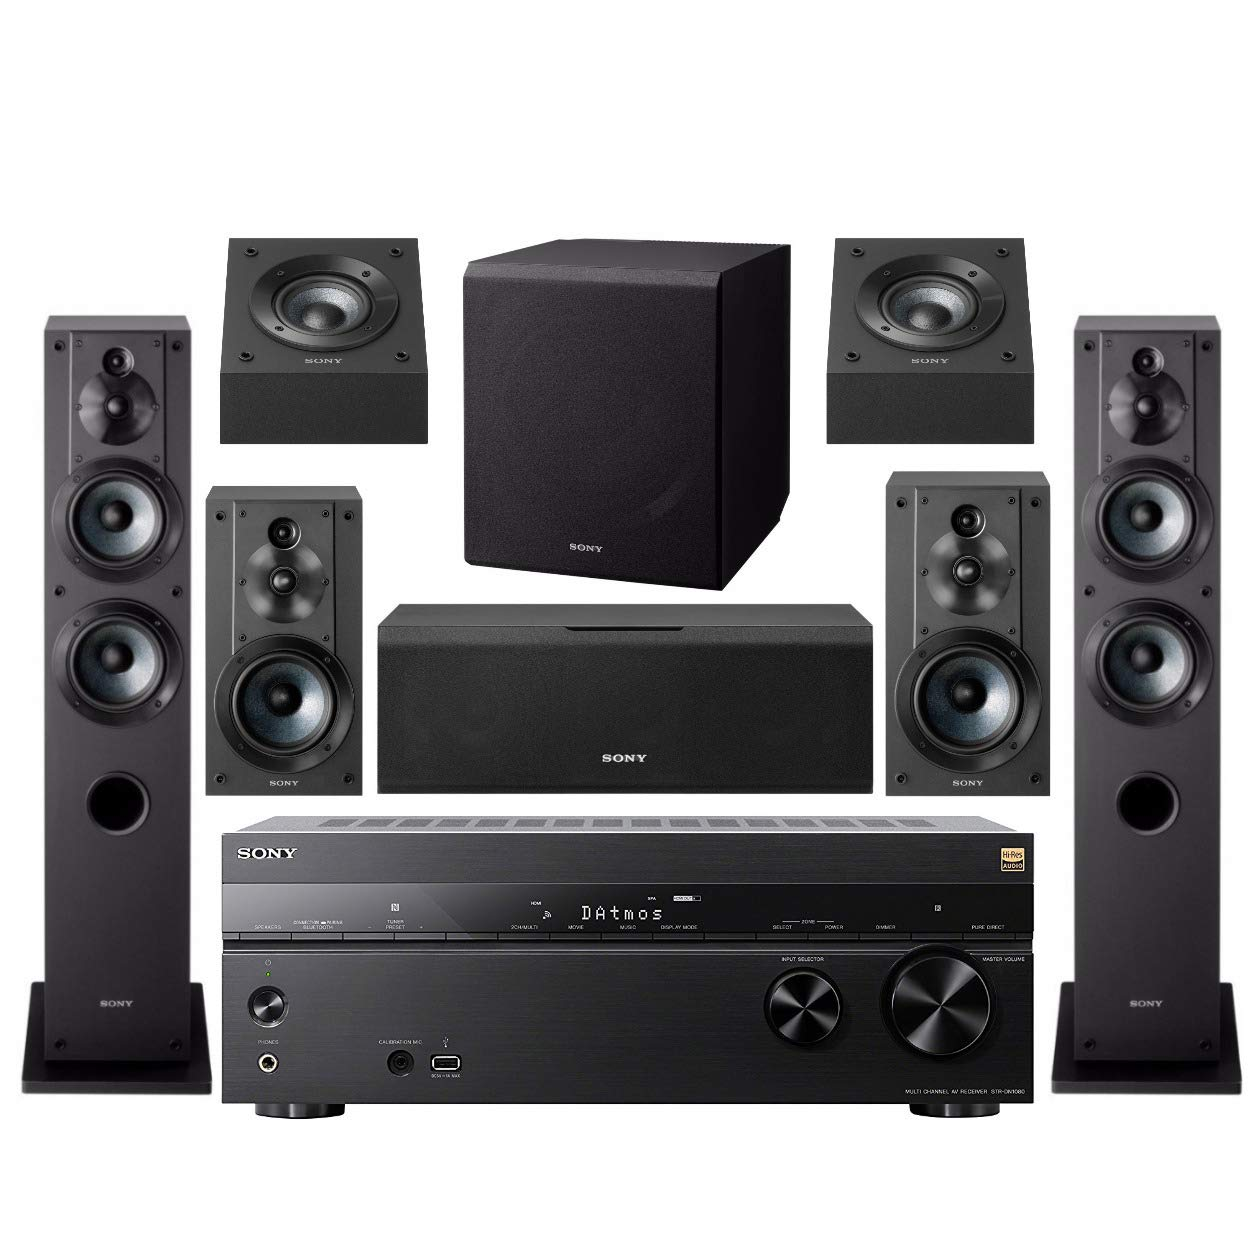 Sony STR DN1080 7.2 Channel Home Theater AV Receiver Bundled with Active Subwoofer and Seven Sony Speakers (9 Items)